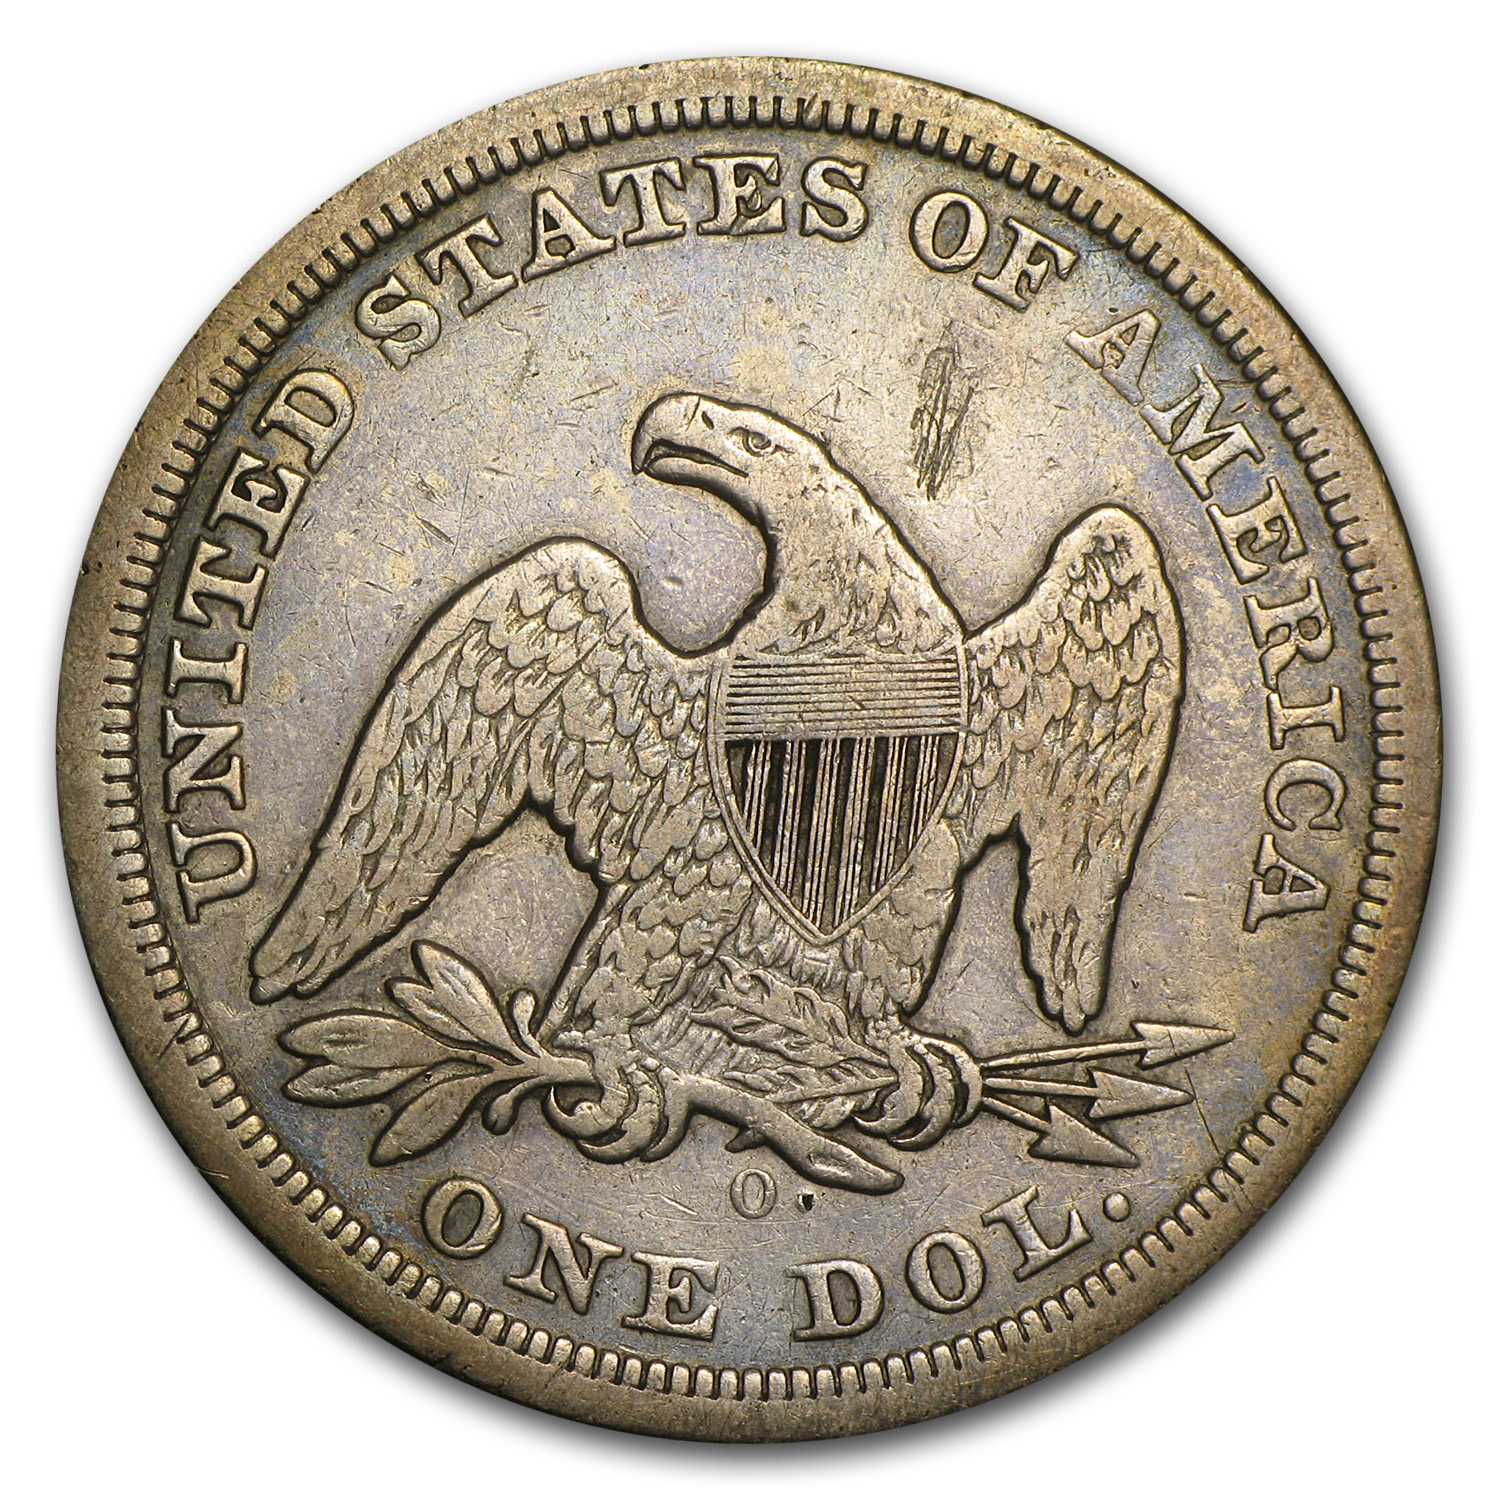 1846-O Liberty Seated Dollar - Very Fine